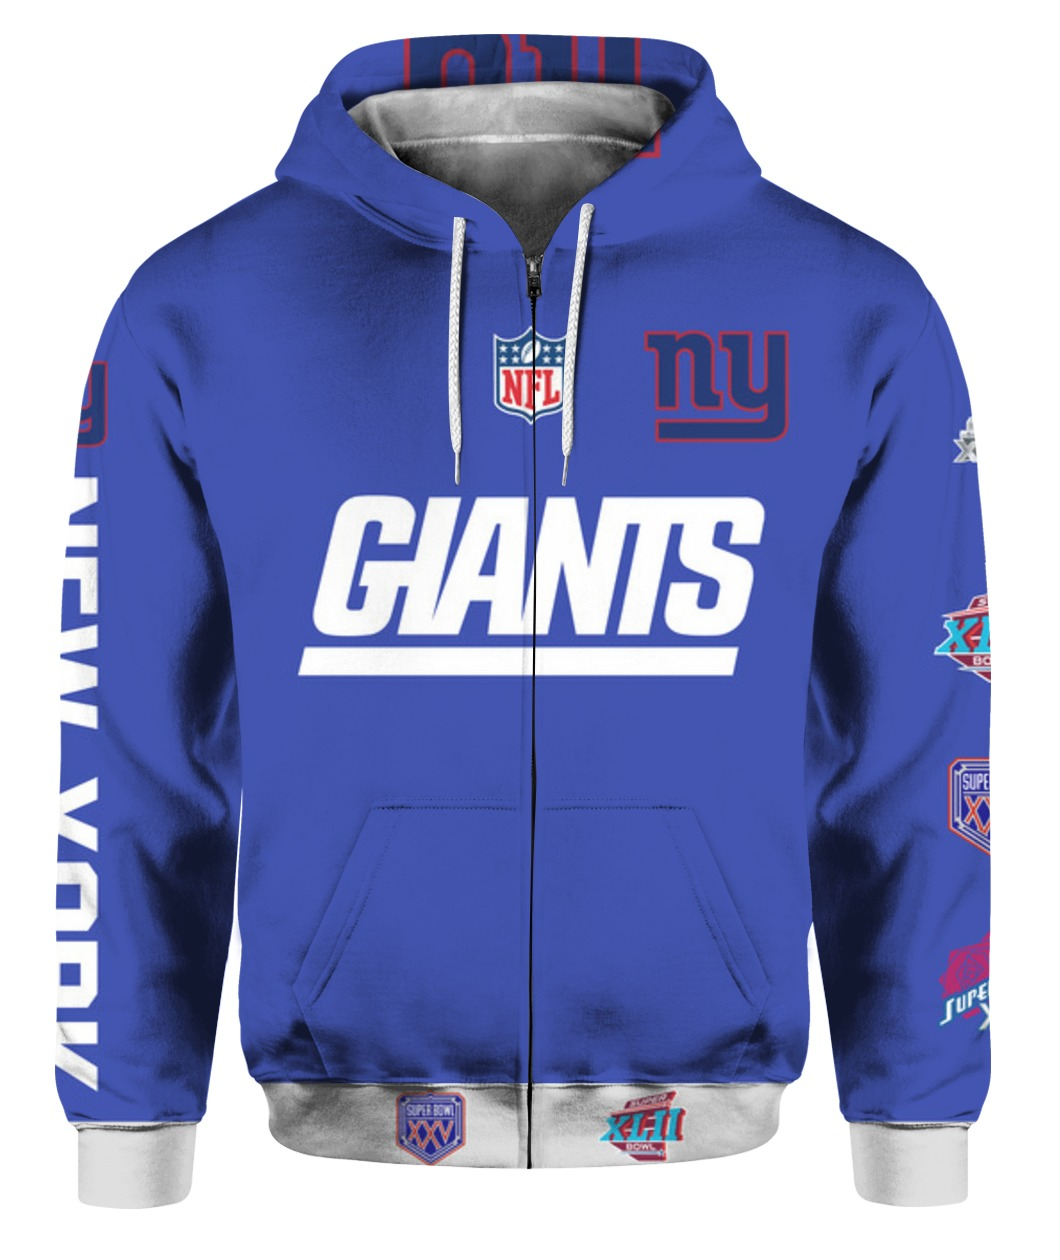 Stand for the flag kneel for the cross new york giants all over print zip hoodie